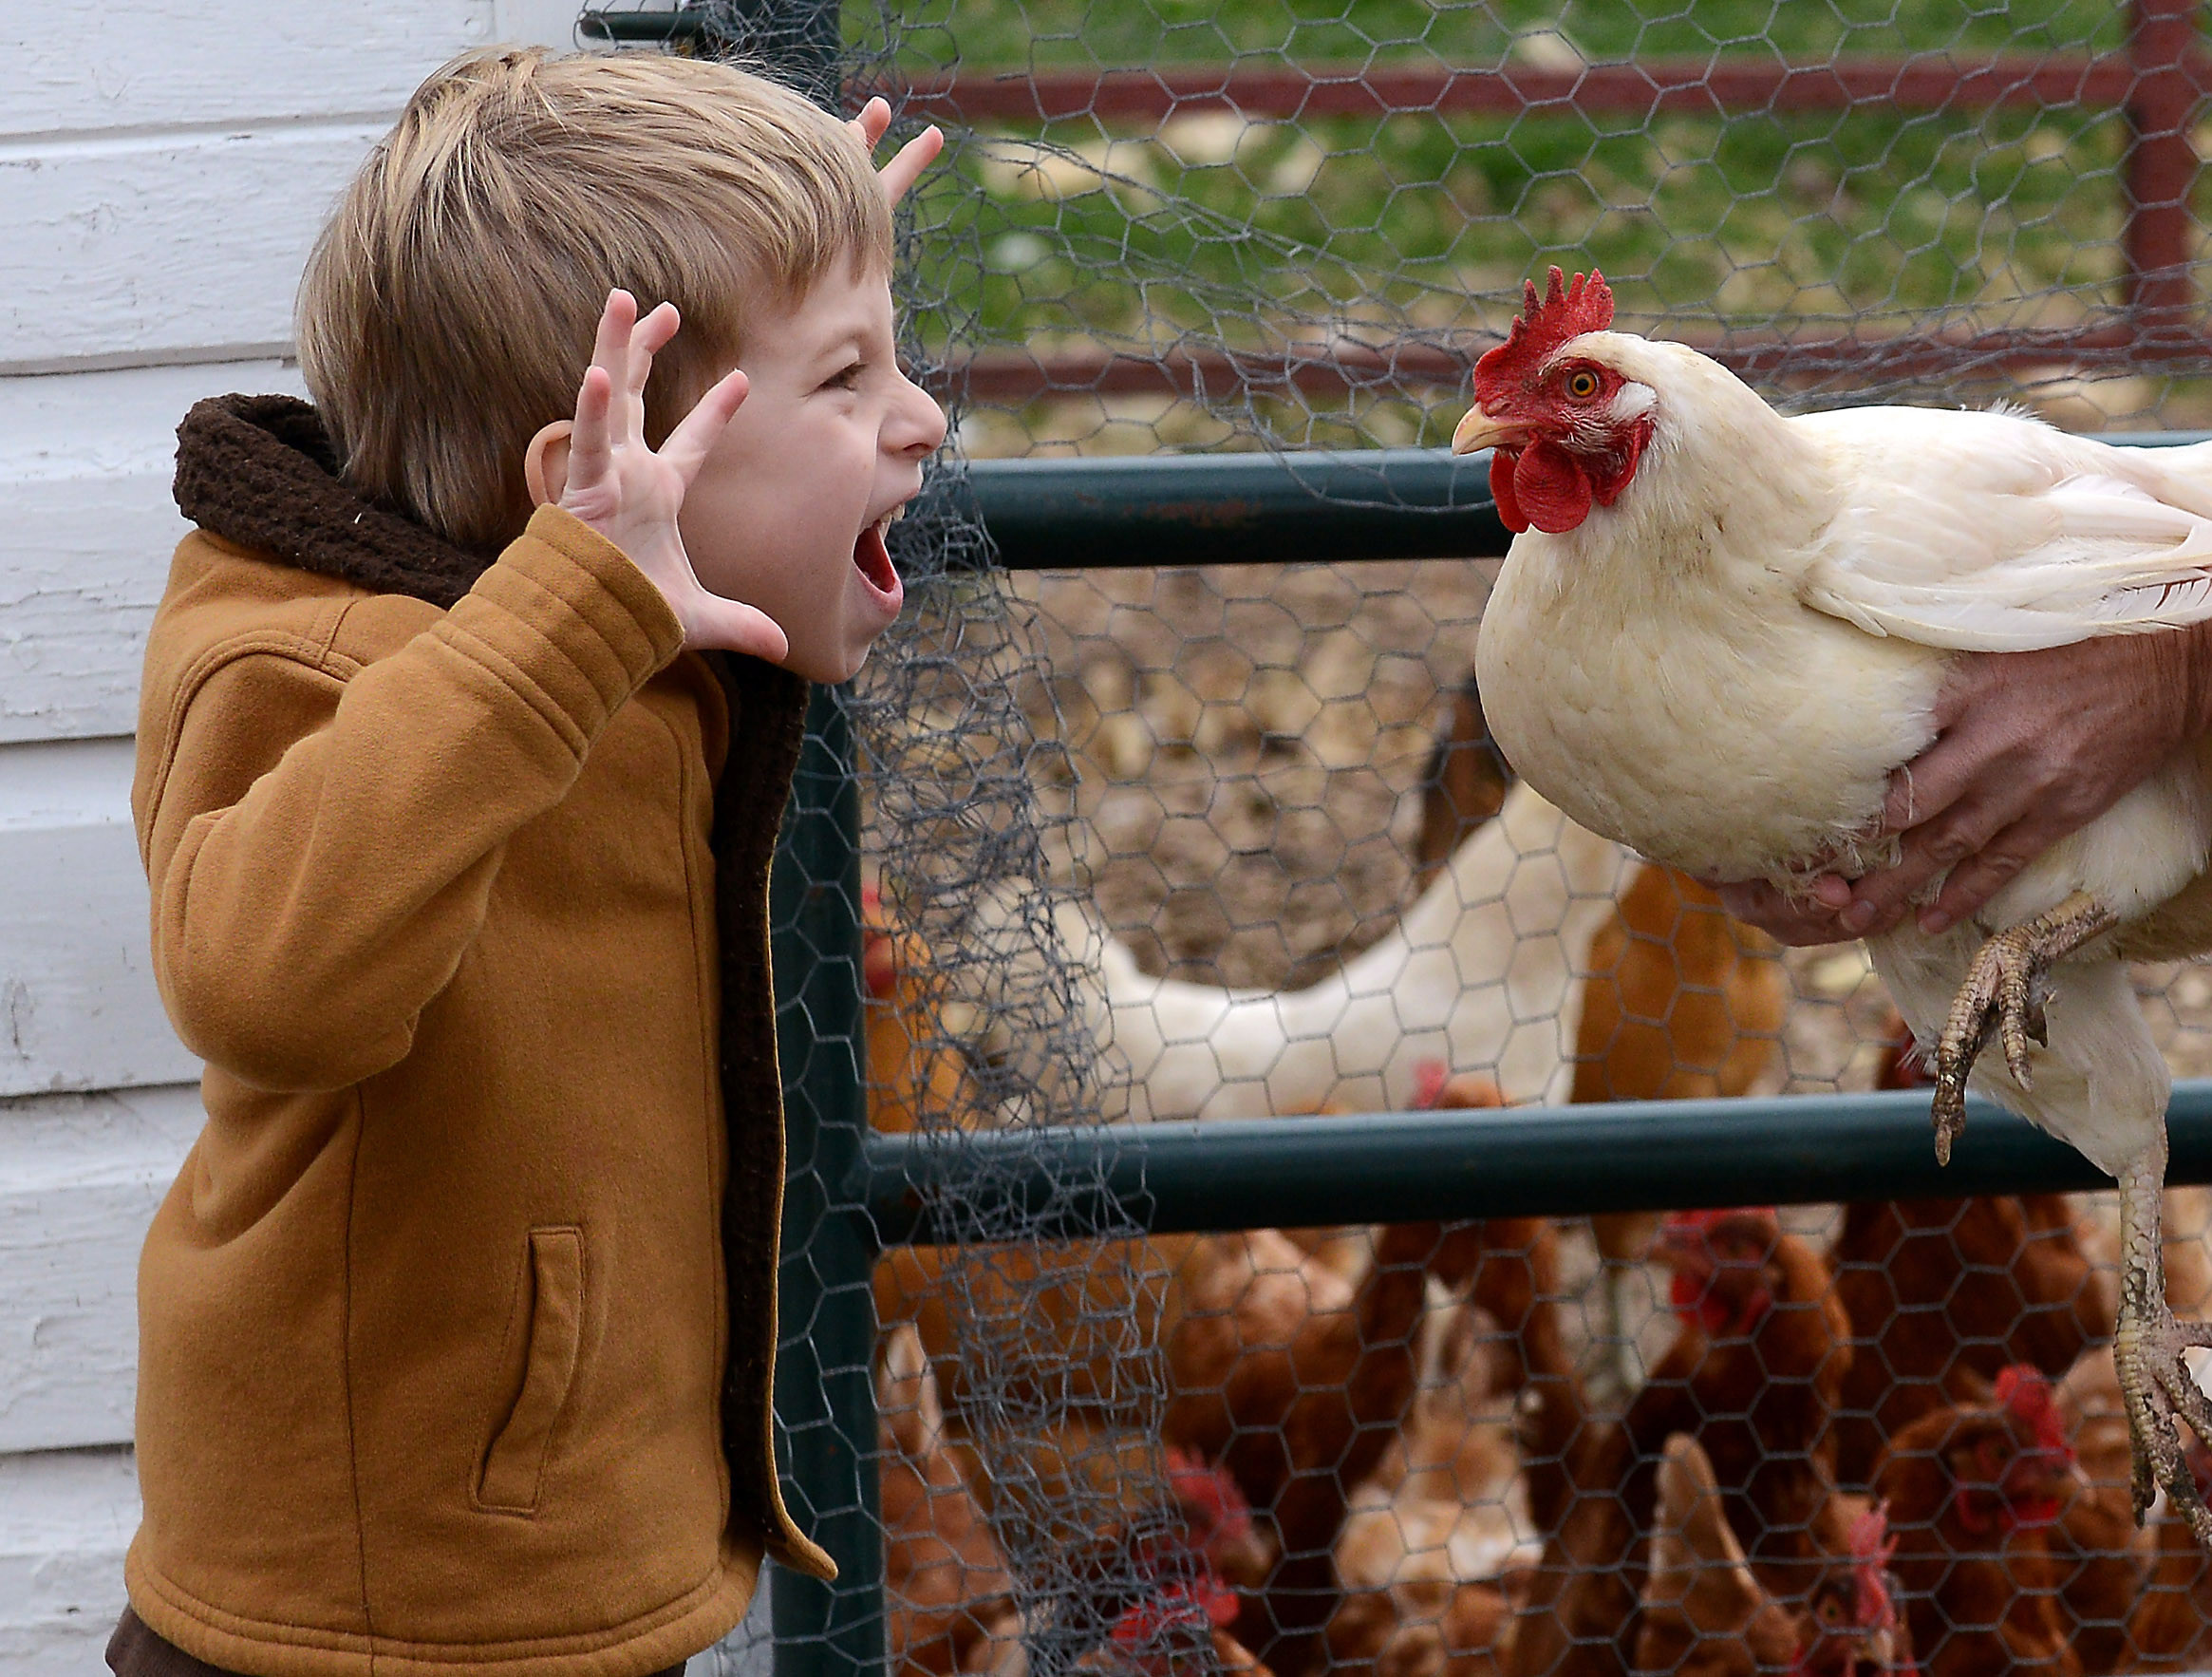 6-year-old son Solomon Johnson makes a face a chicken that his mom Gennifer was trying to hand to him at Brookdale Road Farm in Woodstock. The chicken was flapping his wings at Solomon so he made his scary face in retaliation.